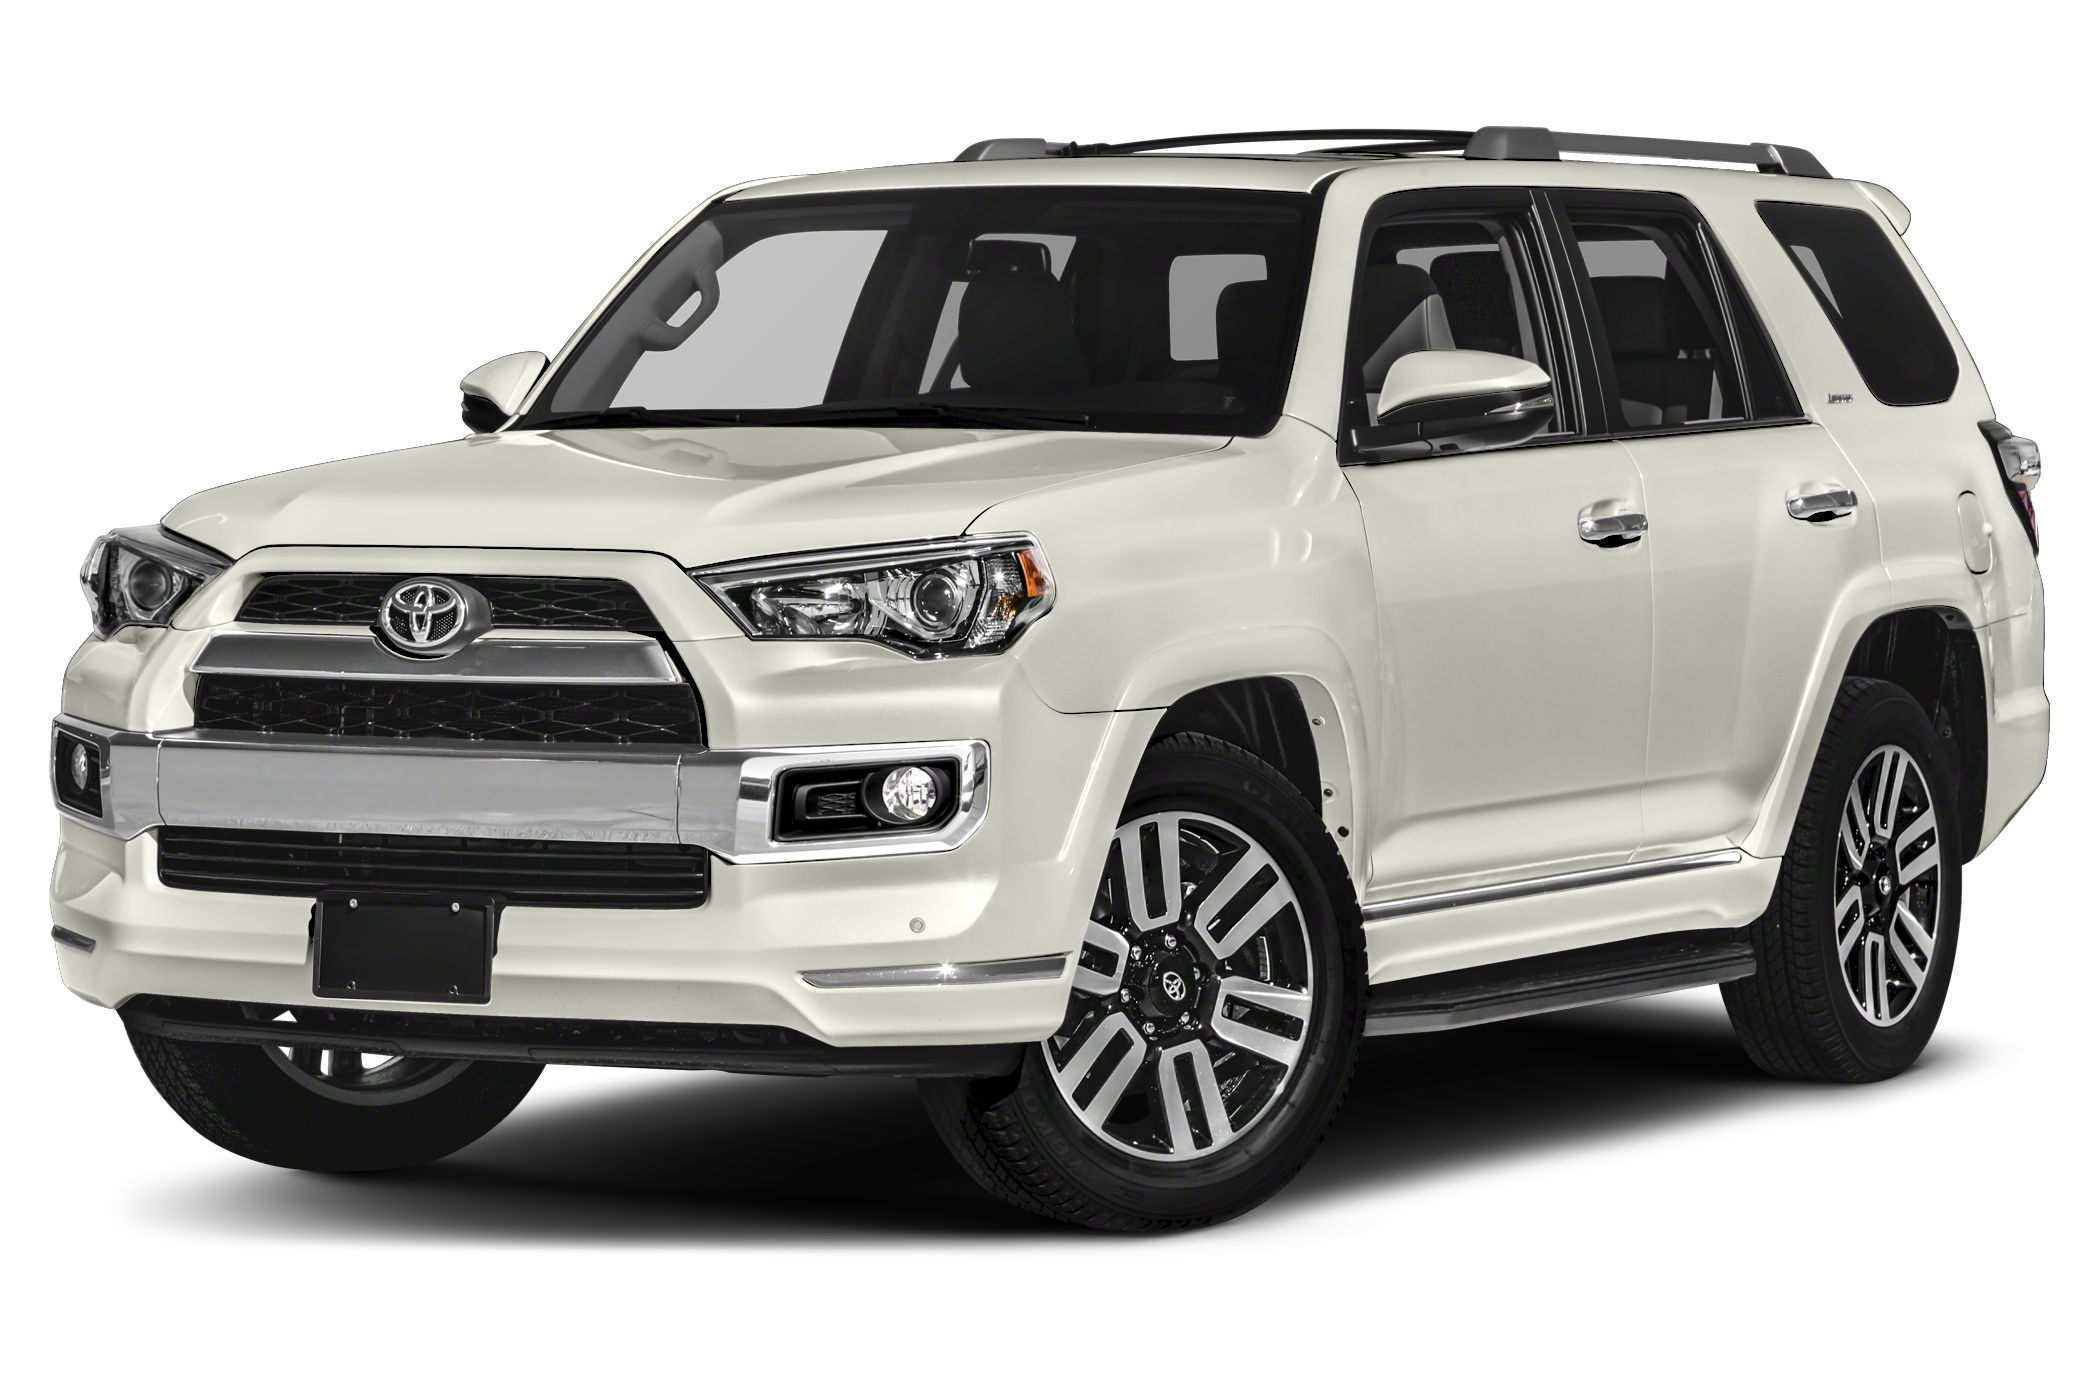 51 Best Review The 2019 Toyota 4Runner Limited Exterior Prices with The 2019 Toyota 4Runner Limited Exterior